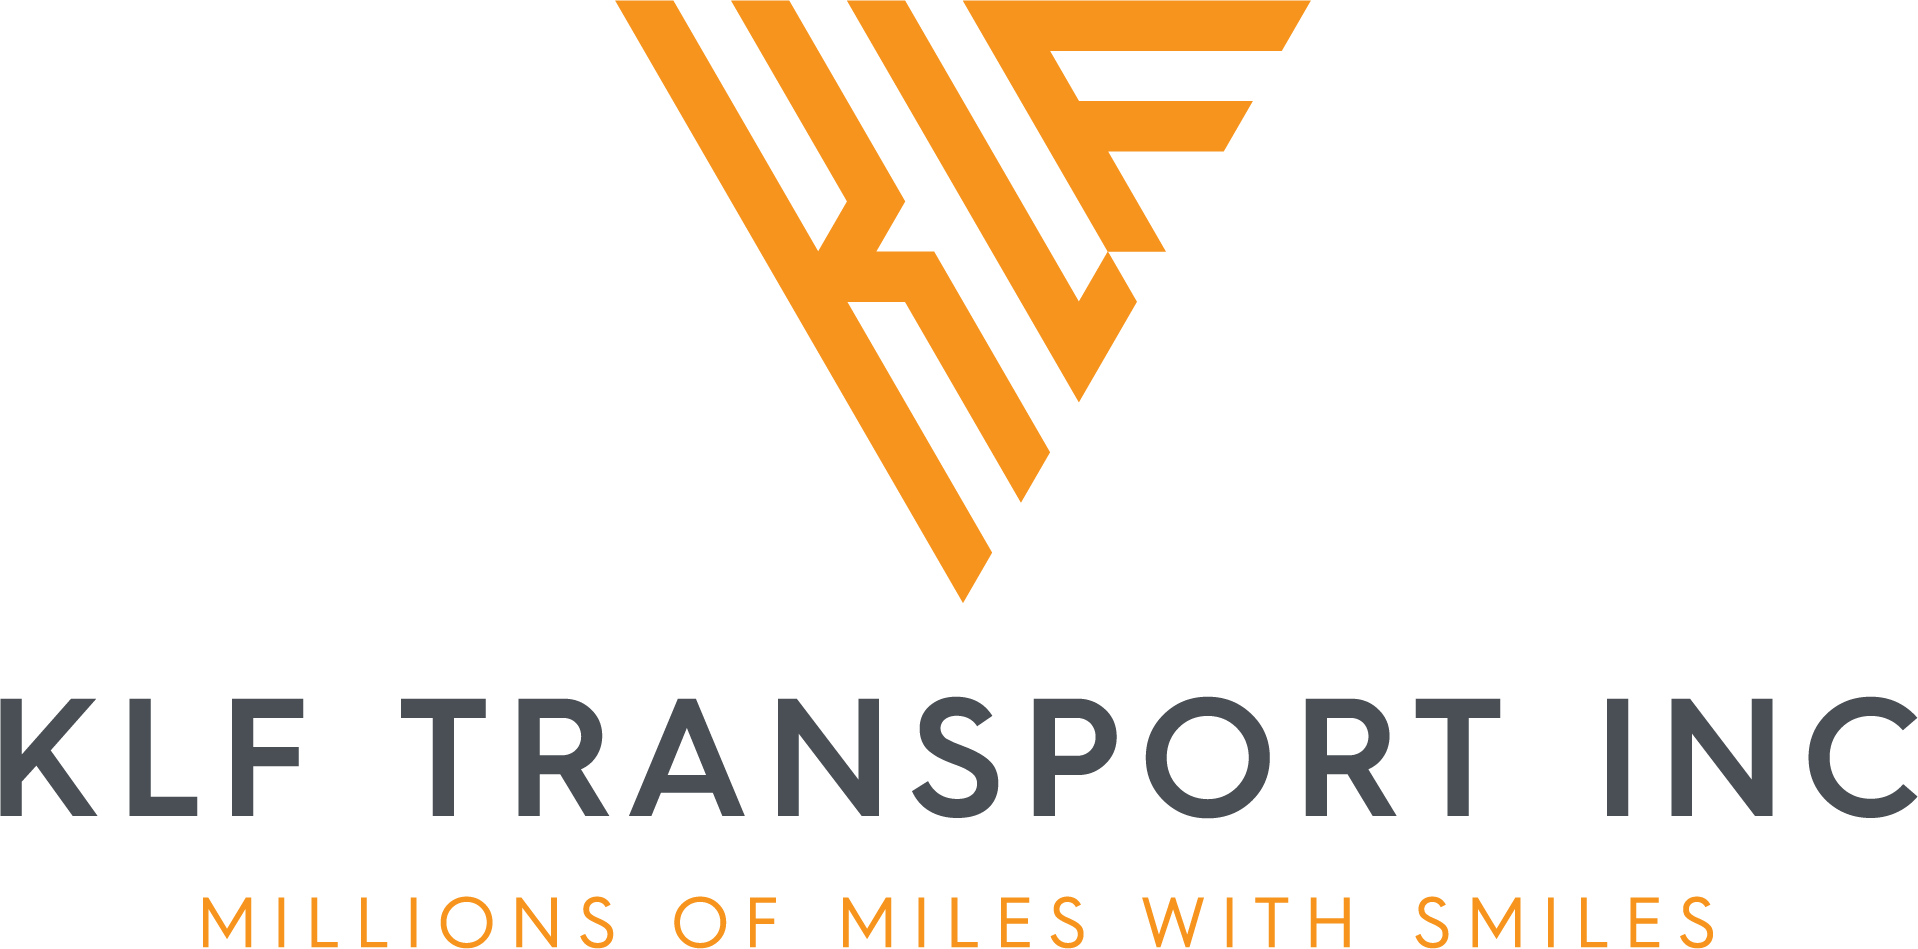 KLF Transport Inc logo